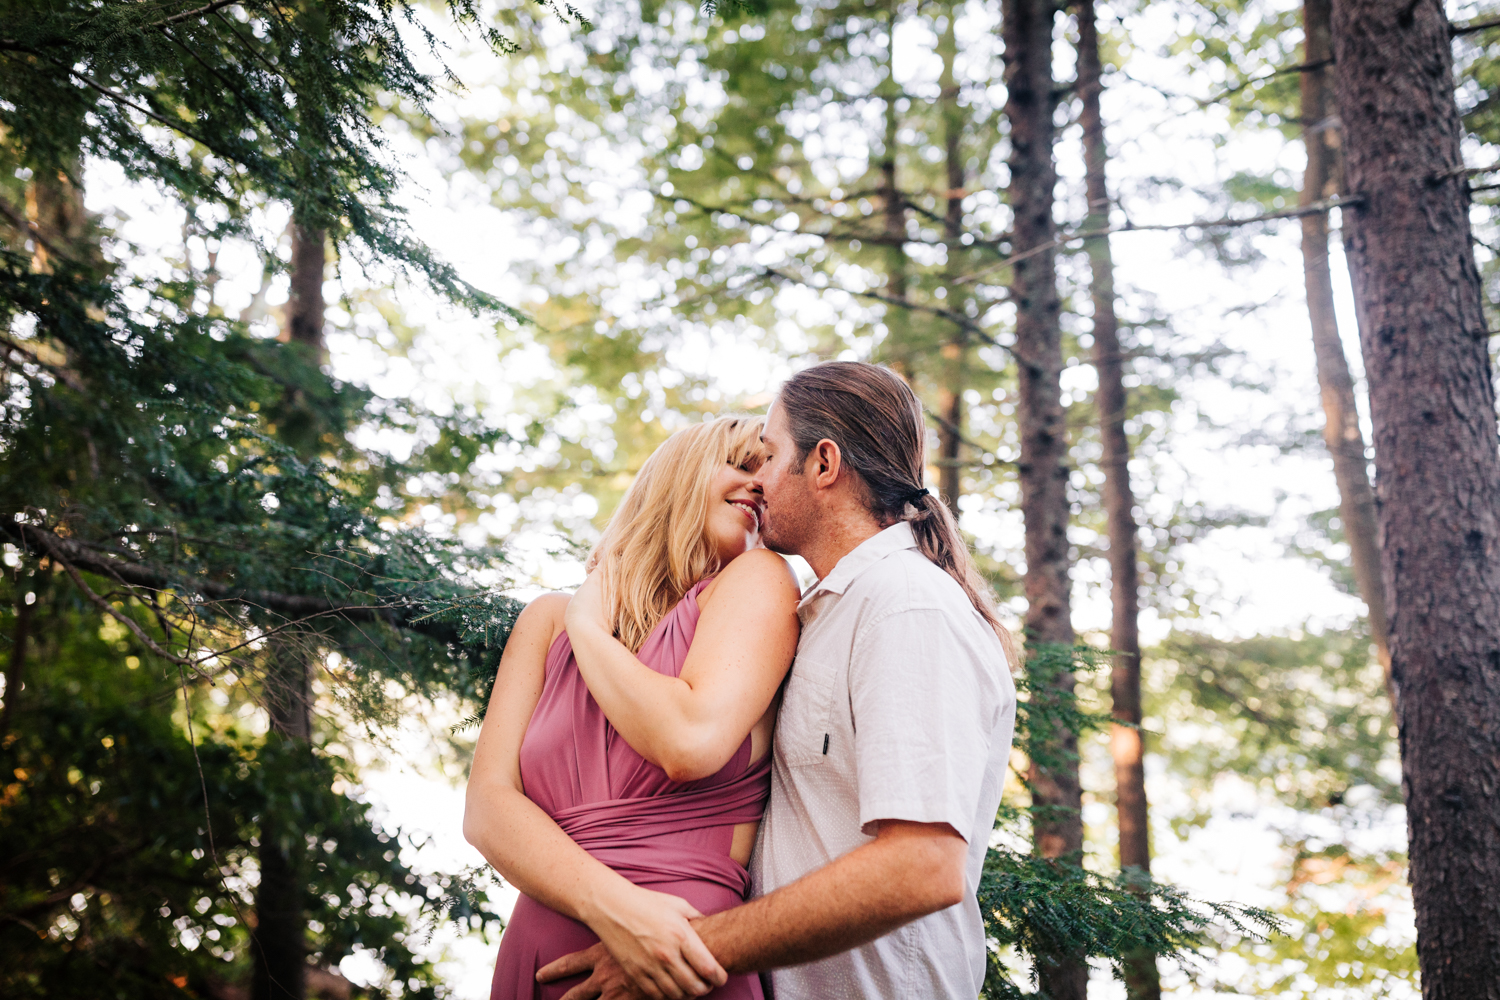 natural-fun-woodsy-engagement-new-hampshire-andrea-van-orsouw-photography-dublin-adventurous-photographer.jpg